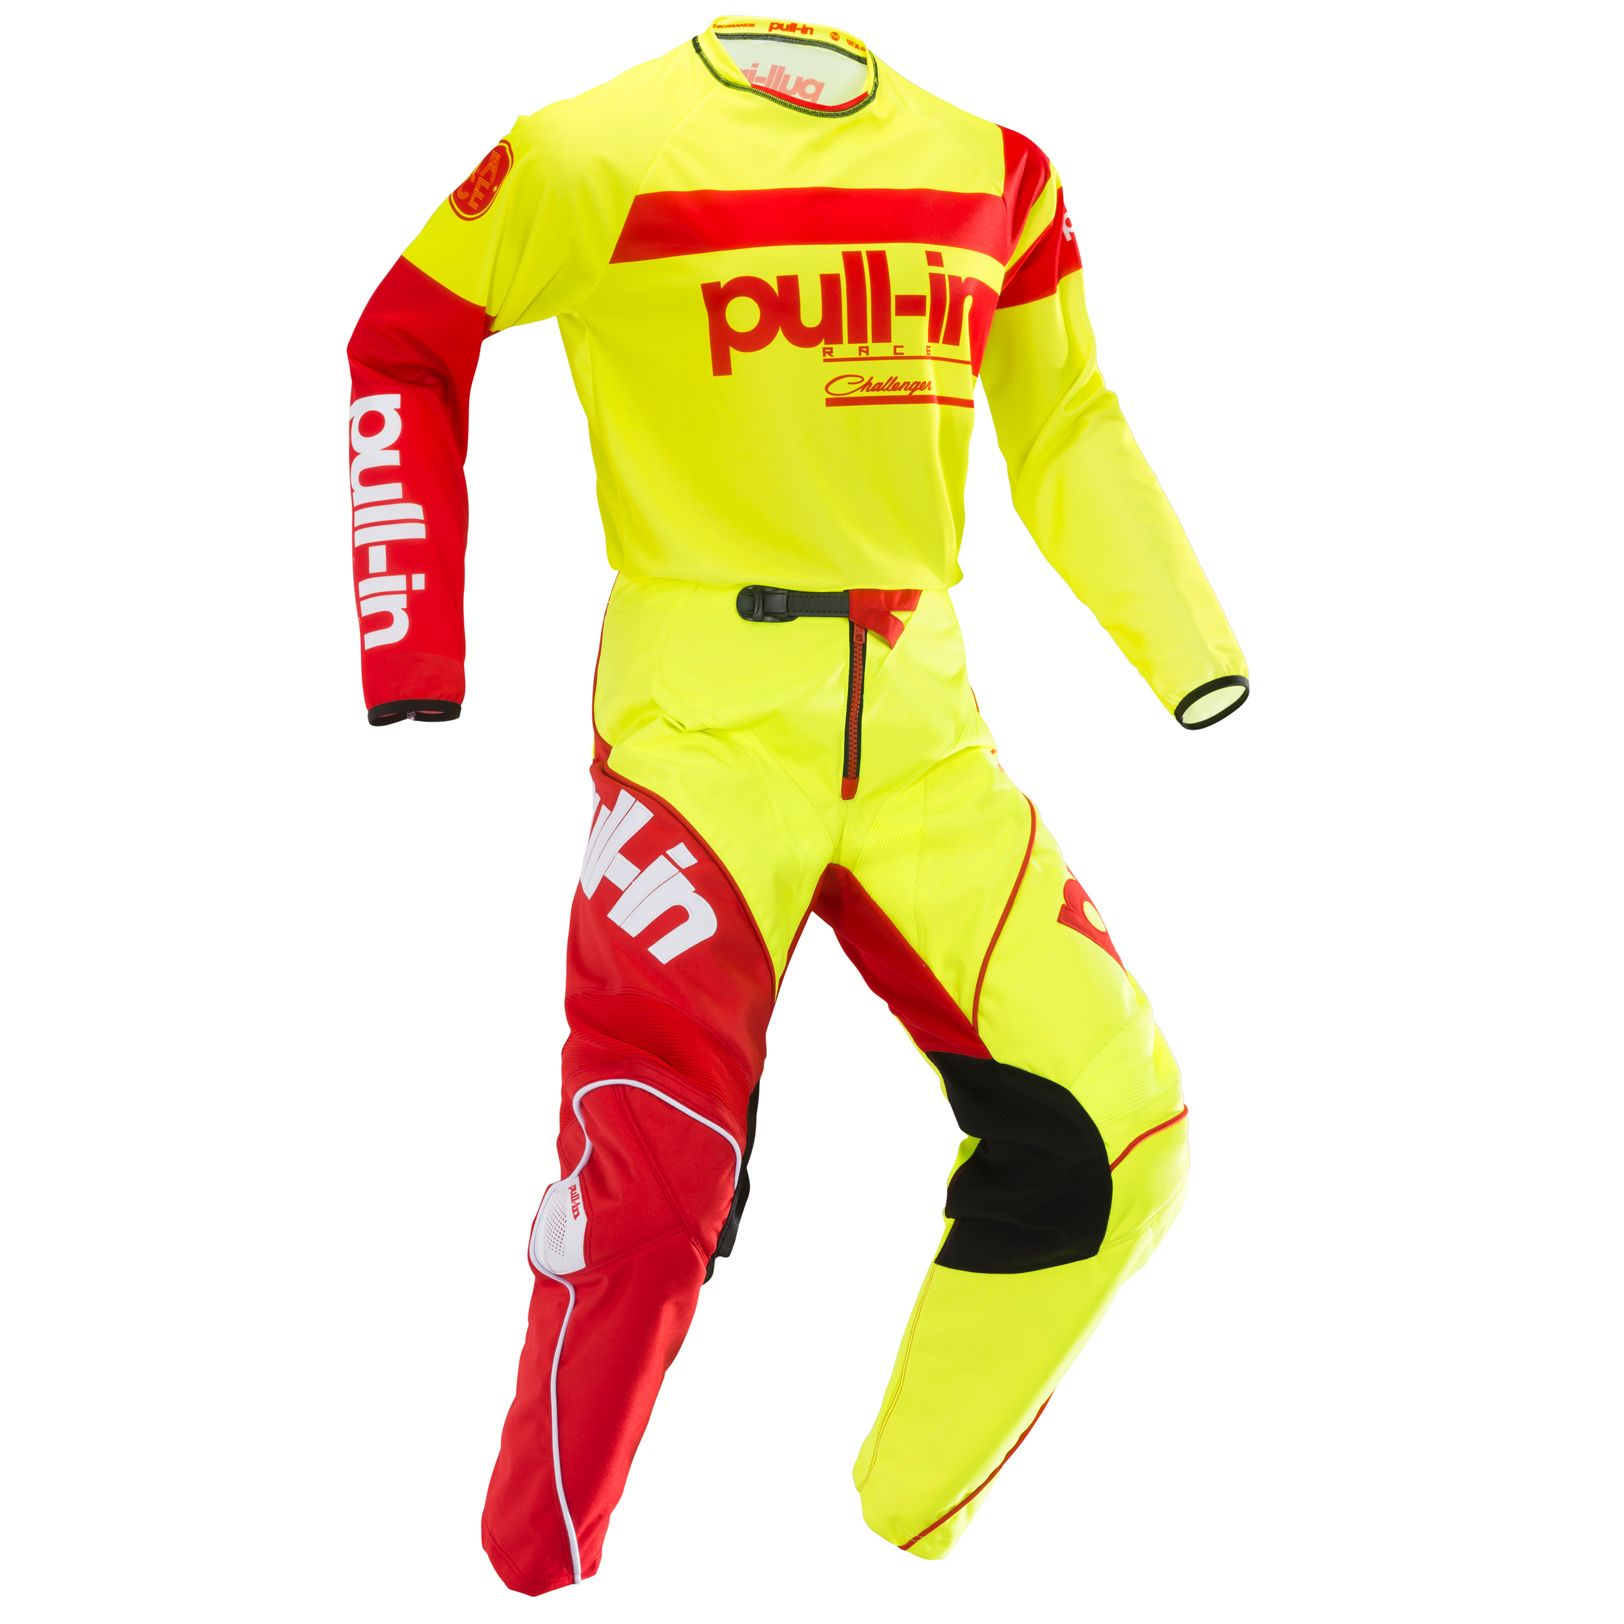 195-9003150-92 Pull-In 2019 Challenger Race Neon Yellow Red Motocross Jersey Enduro Trikot Crosstrui Maillot Offroad